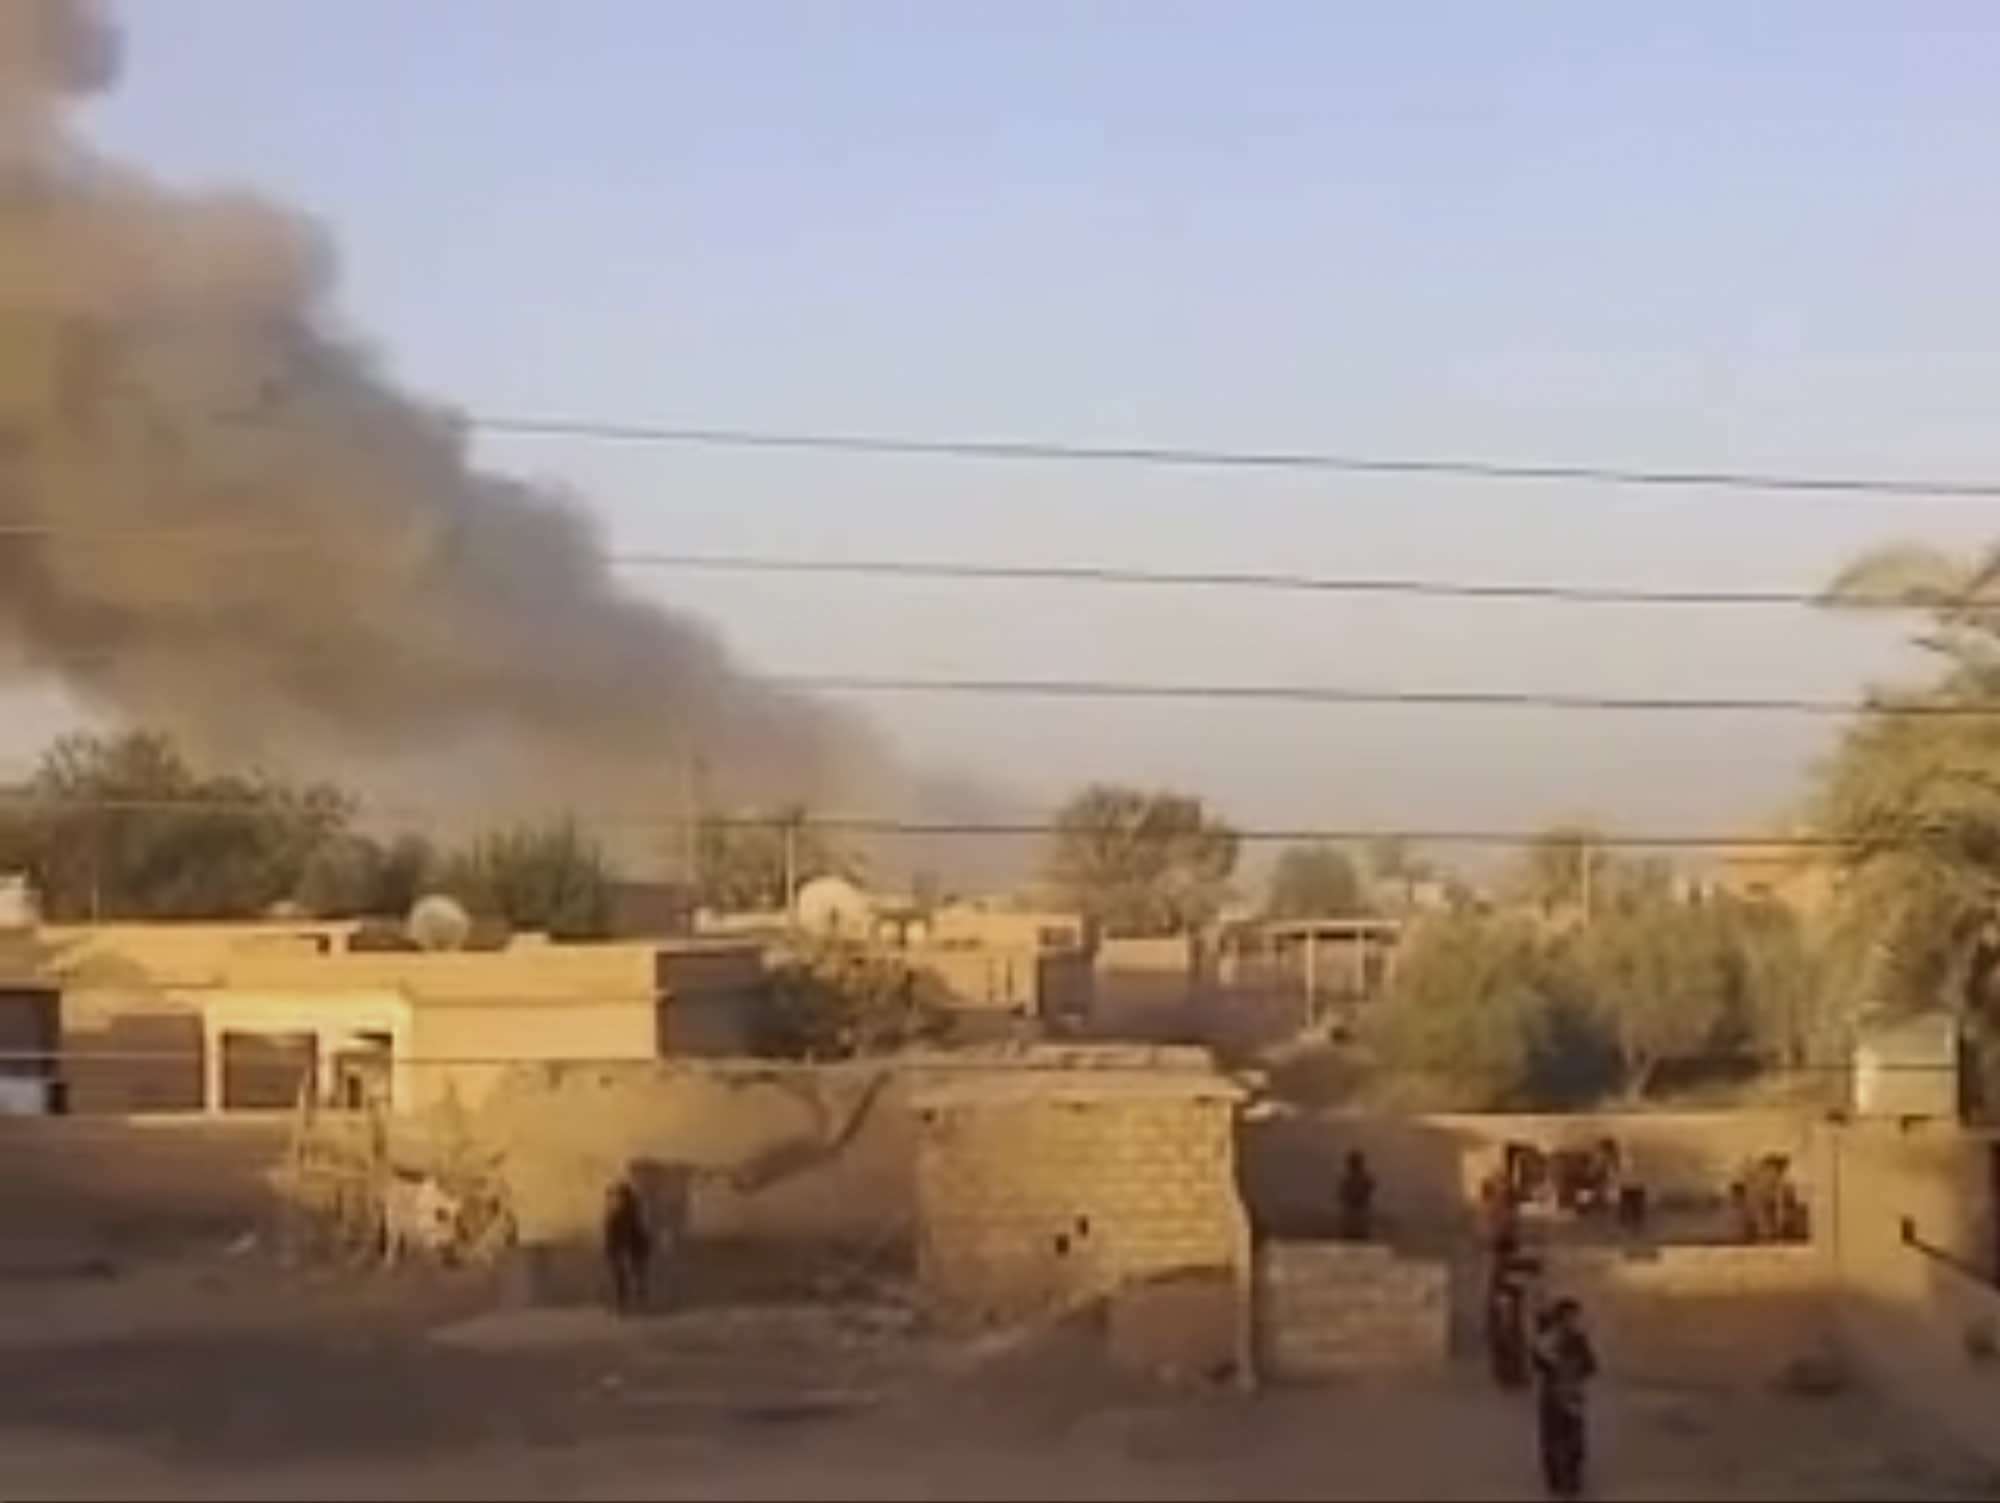 This image made from video provided by Deir Press Network and accessed by AP video on Thursday, Aug. 23, 2012 purports to show smoke rising after a bombing in Deir El-Zour, Syria. Across the country, scores of people died in shelling and clashes, according to the Britain-based Syrian Observatory for Human Rights and the Local Coordination Committees. The bloodshed coincided with the departure from the Syrian capital on Thursday of the last of the United Nations military observers after their mission headed by former U.N. Secretary General Kofi Annan, meant to help end the bloodshed in Syria, failed. (AP Photo/Deir Press Network via AP video) THE ASSOCIATED PRESS HAS NO WAY OF INDEPENDENTLY VERIFYING THE CONTENT, LOCATION OR DATE OF THIS PICTURE.